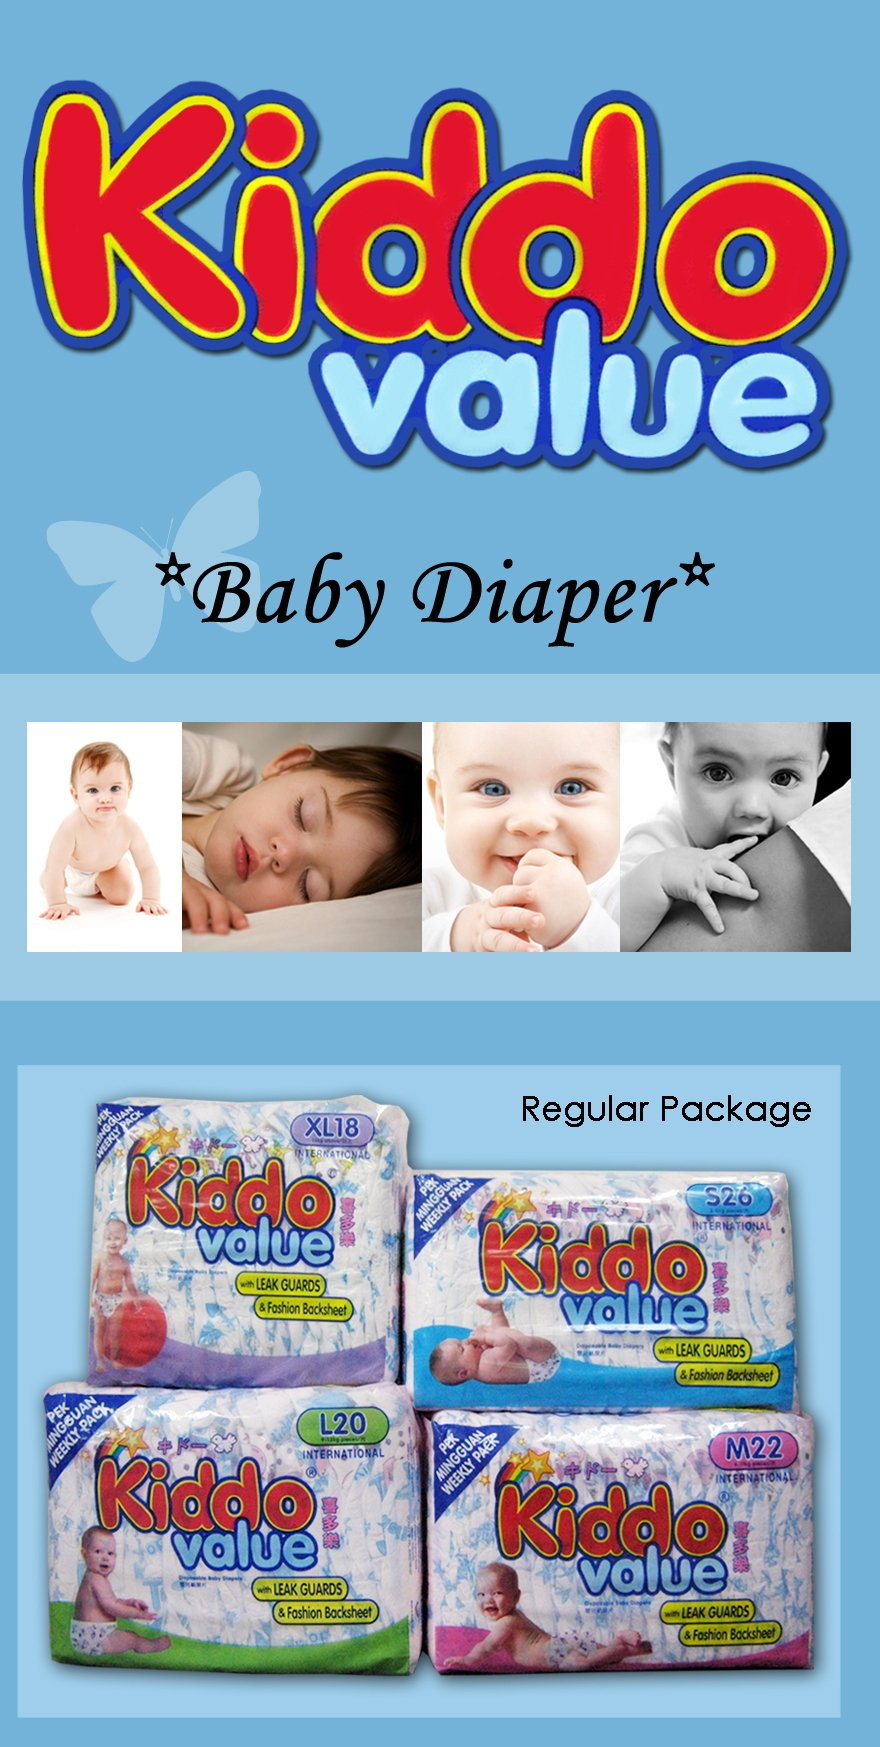 Every Need Want Day Mamypoko Diapers L20 Amazing Low Price Kiddo Value Baby